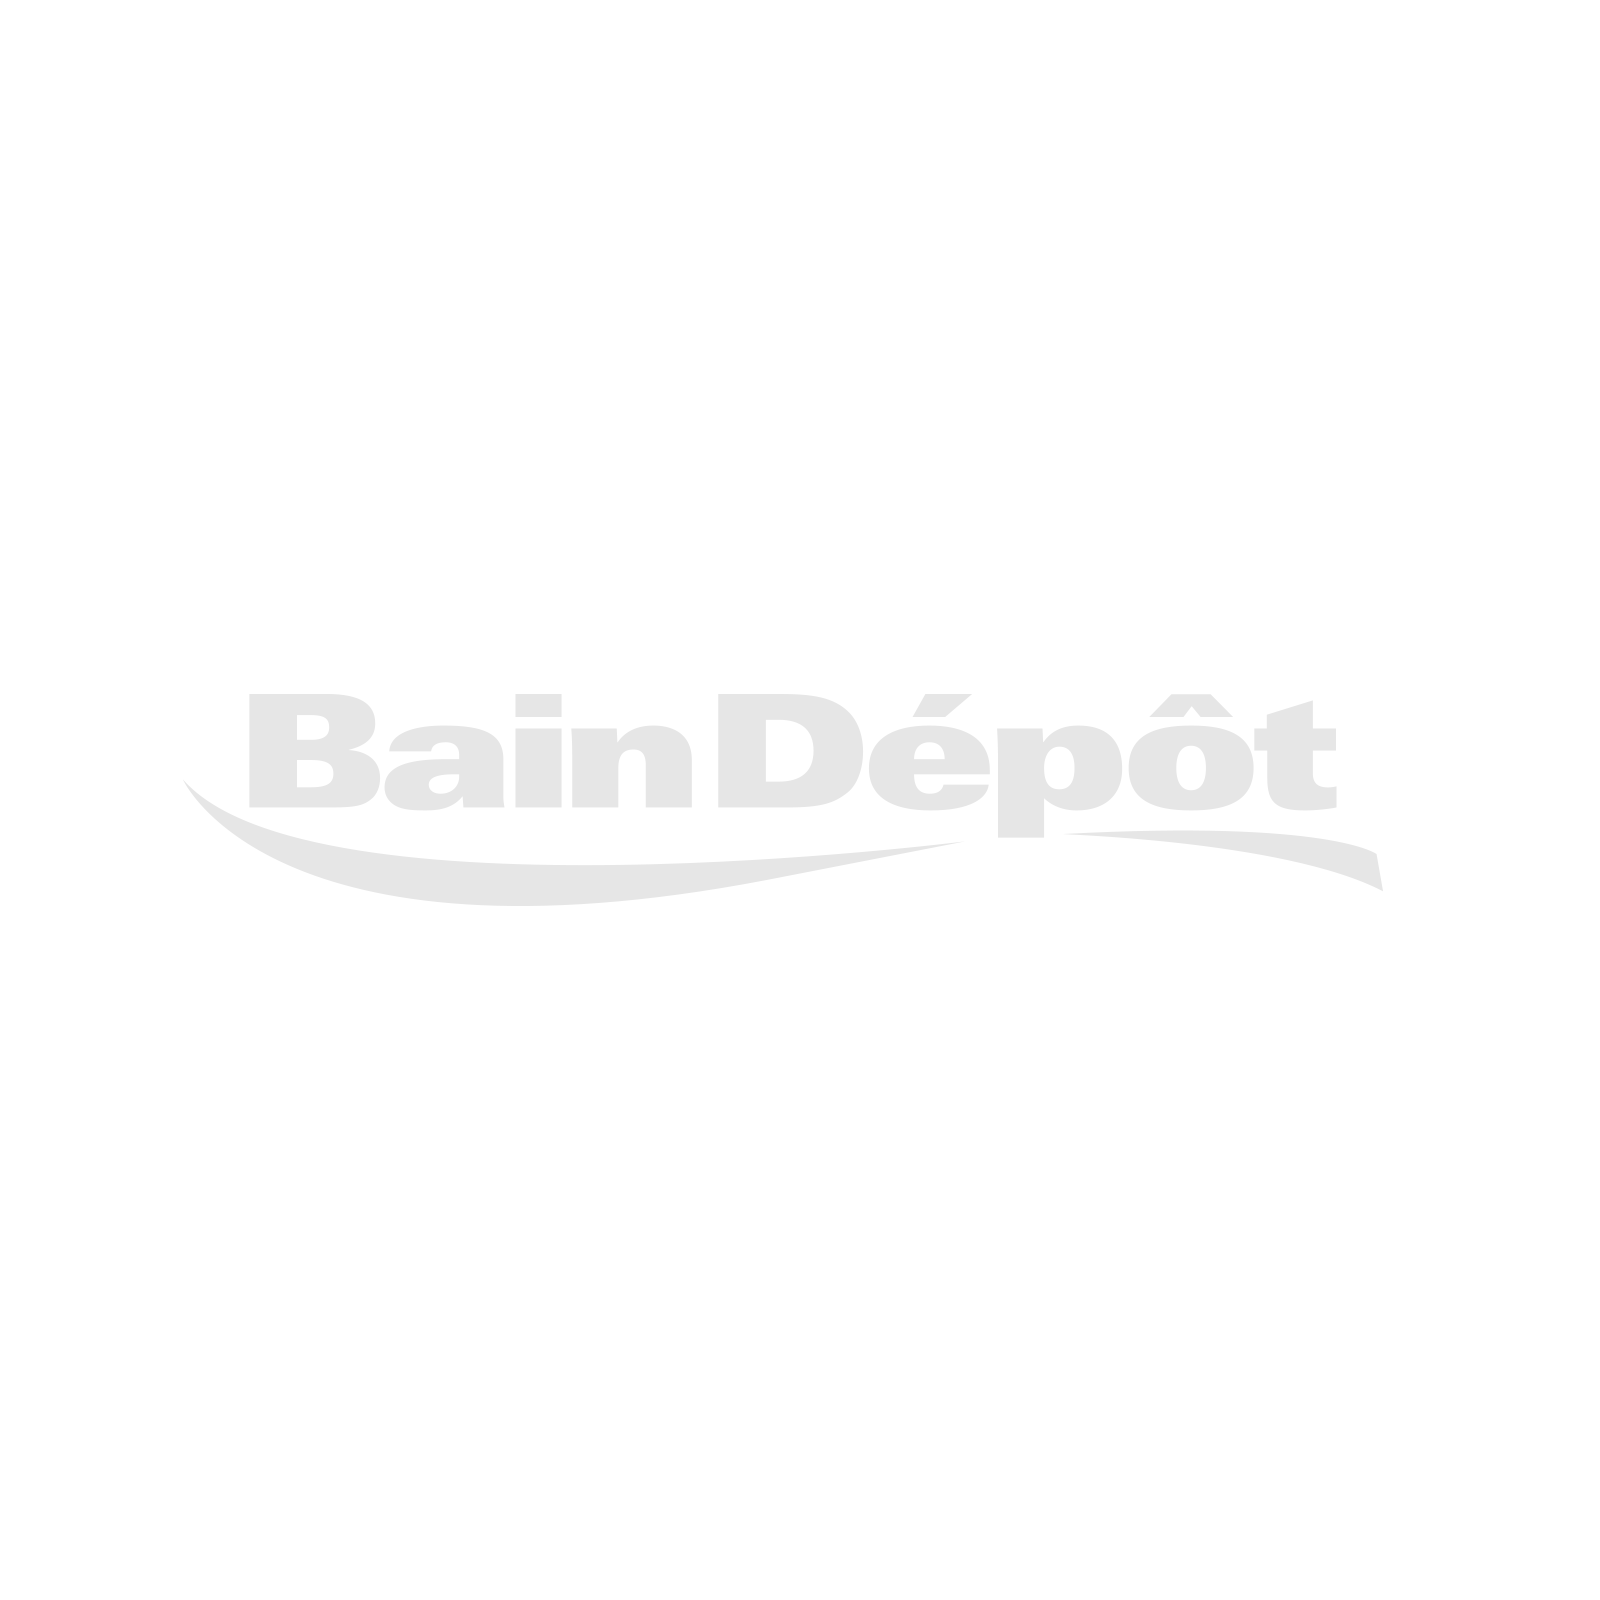 "Undermount kitchen sink 27"" x 20"" with grid"